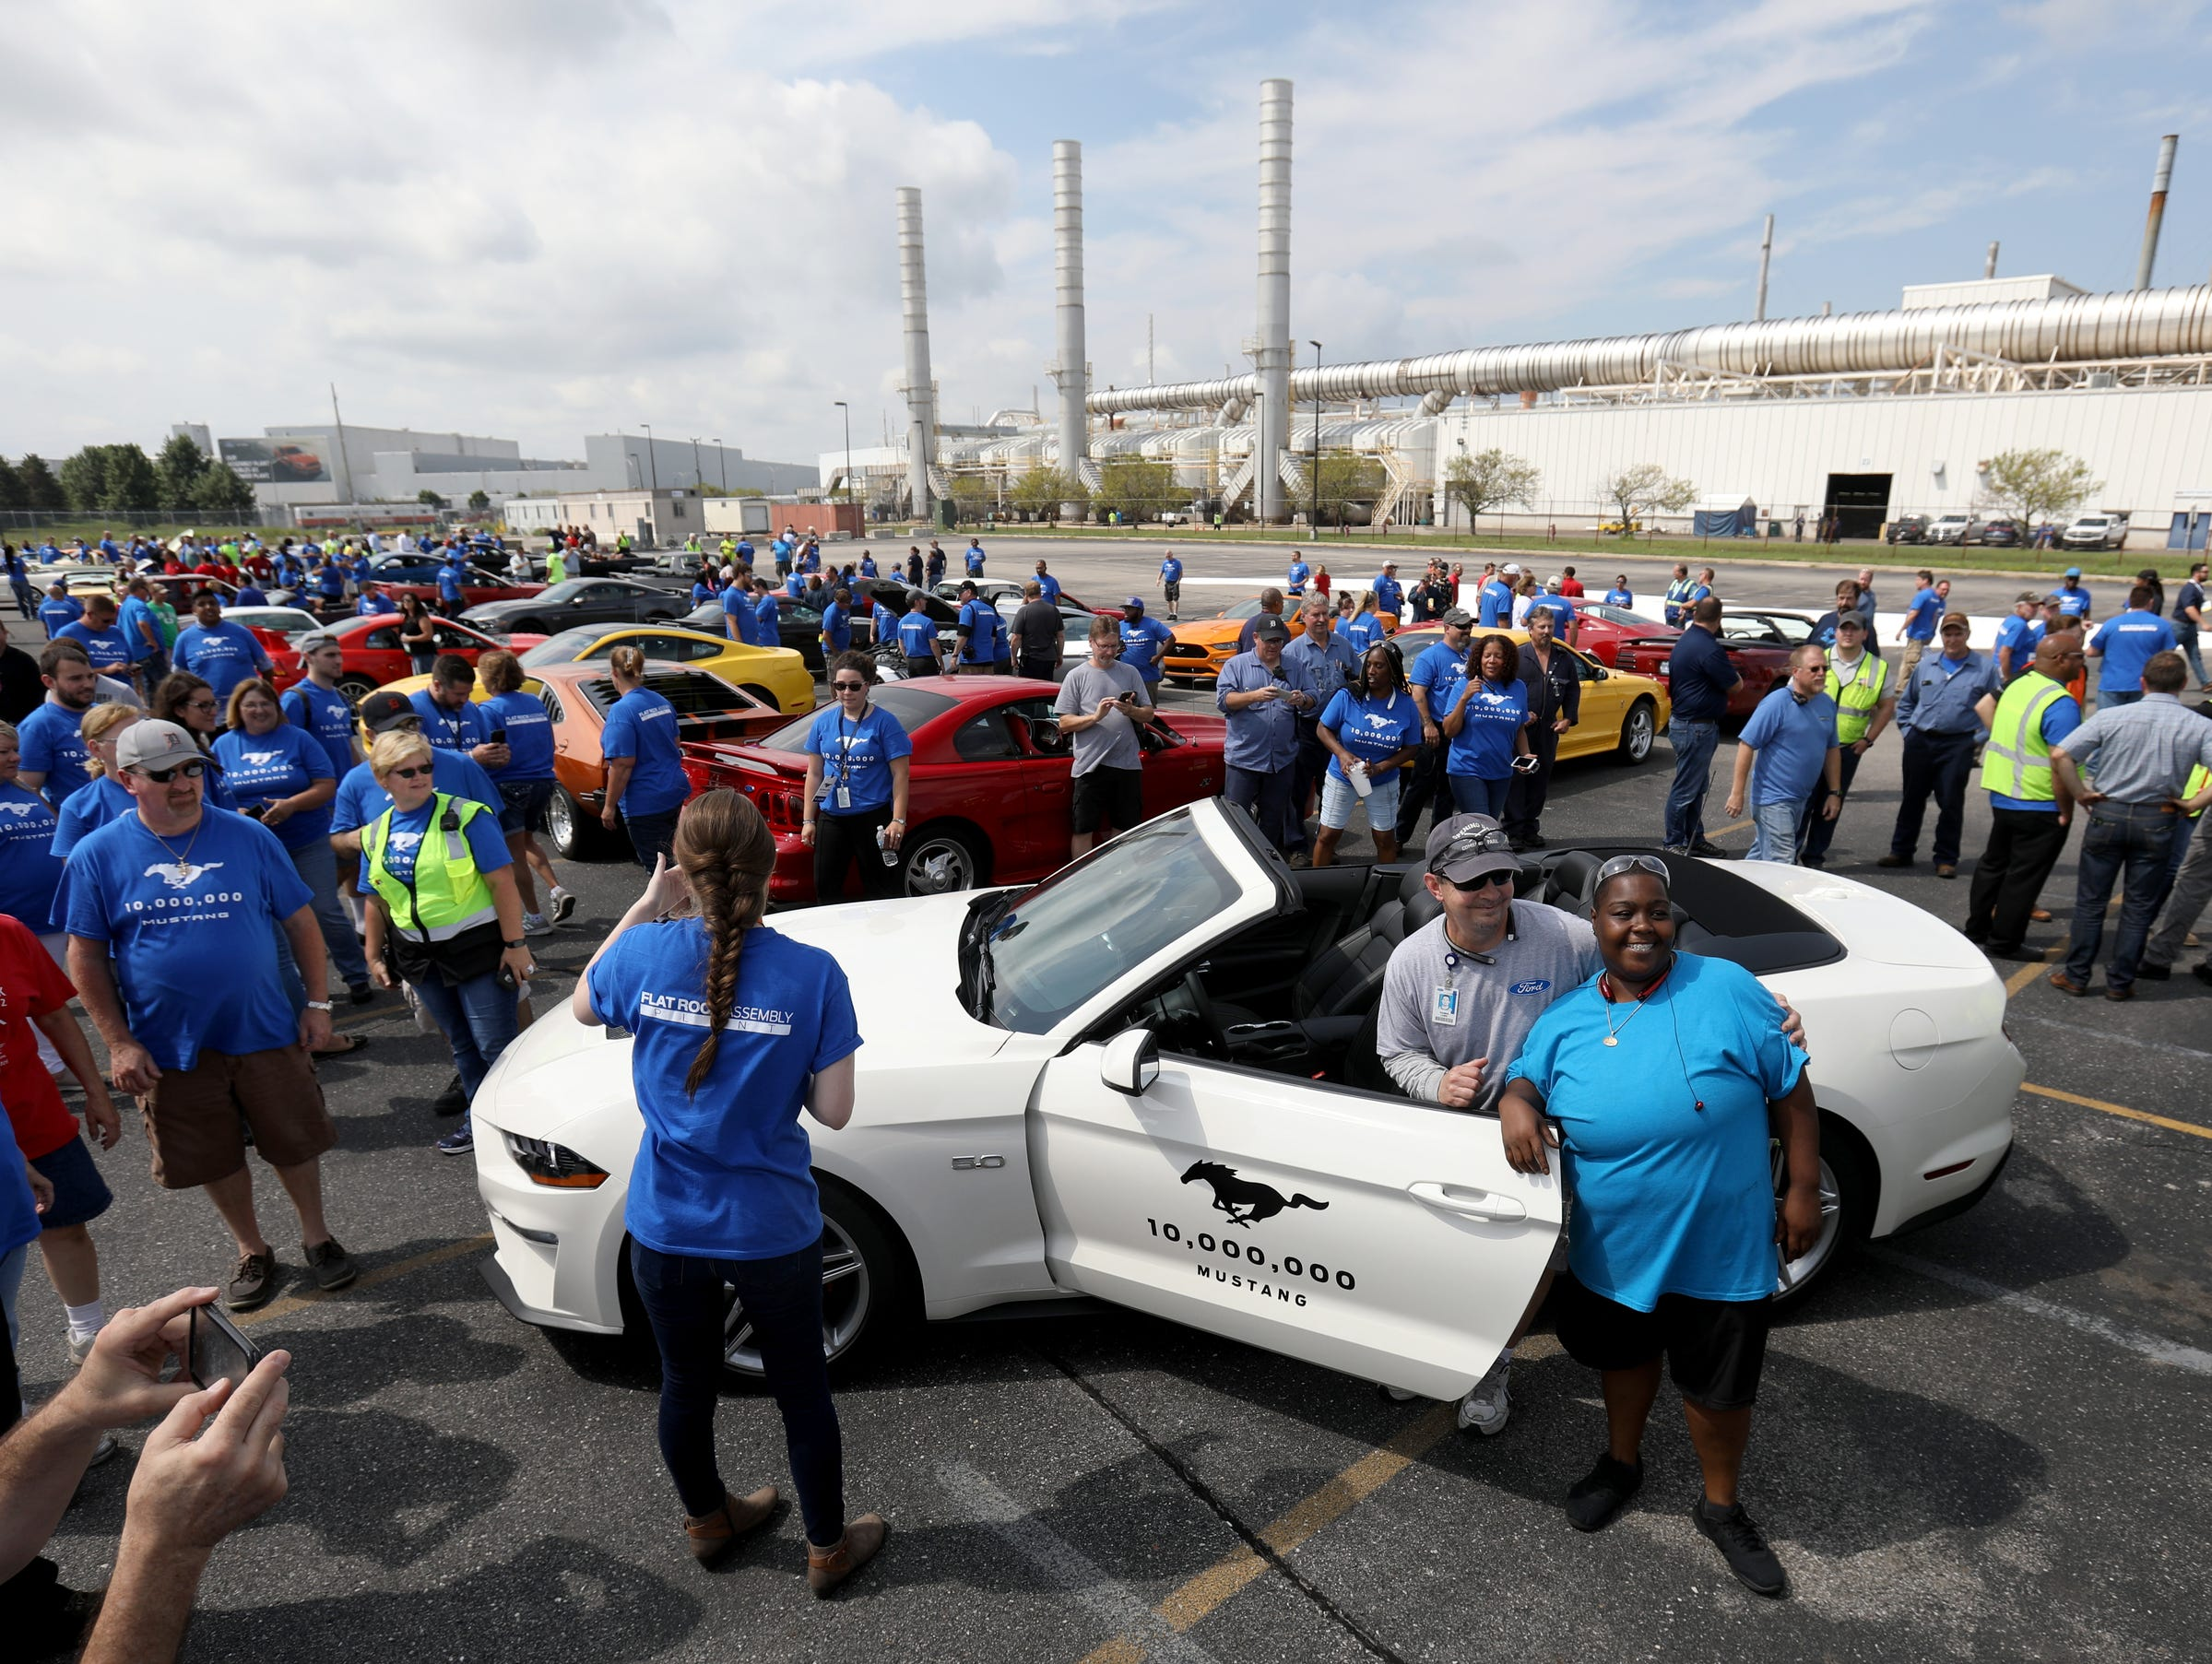 Tommy Lewis of Wyandotte and Danyelle Lampley of Monroe and assembly line workers have their picture taken in front of the 10 millionth Mustang at the Ford Motor Company Flat Rock Assembly Plant in Flat Rock, MI on Wednesday, August 8, 2018.